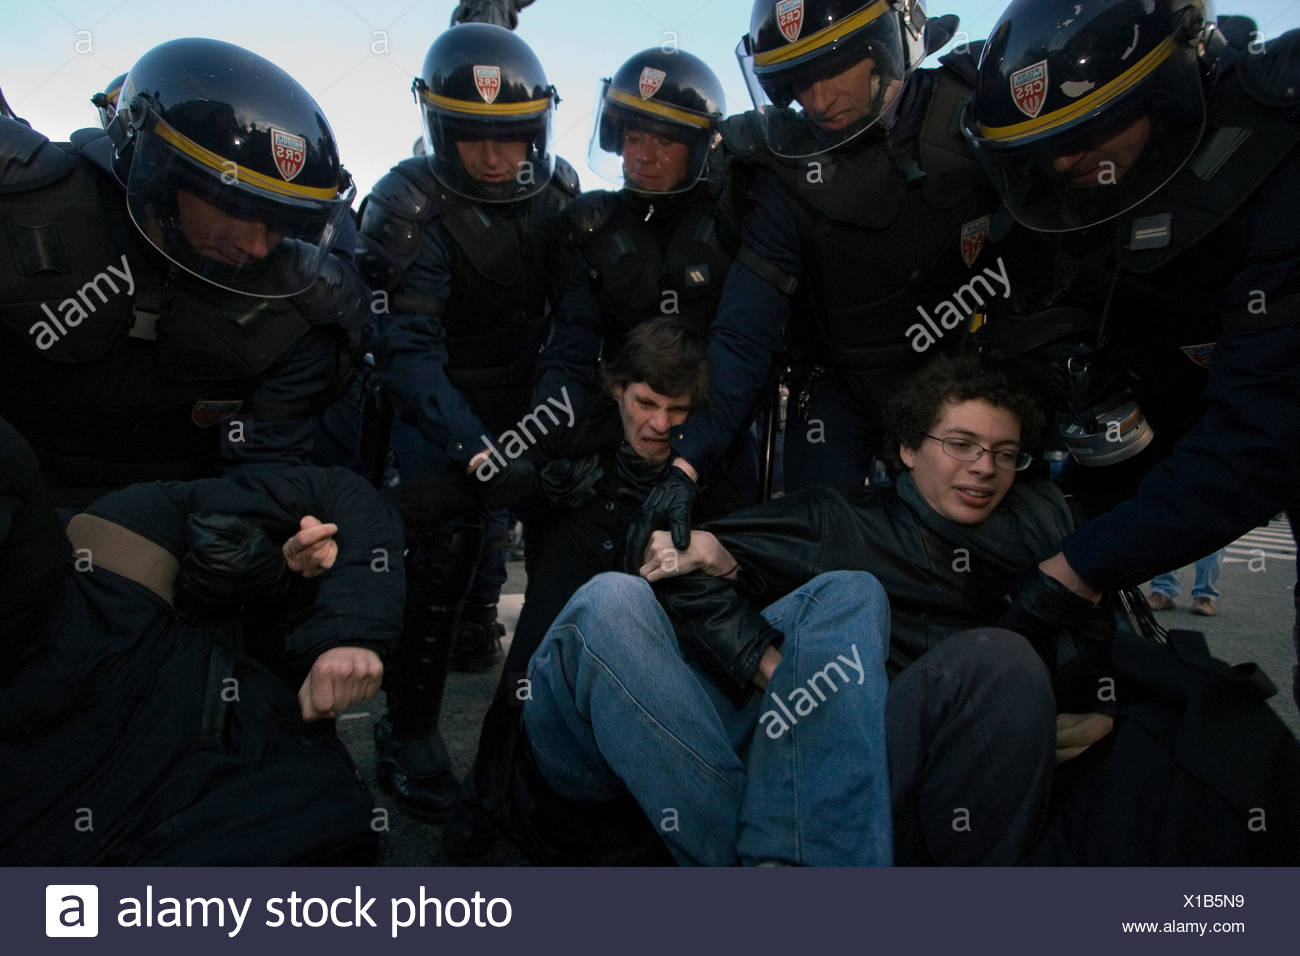 Riot policemen arrest protestors at the end of a rally. - Stock Image